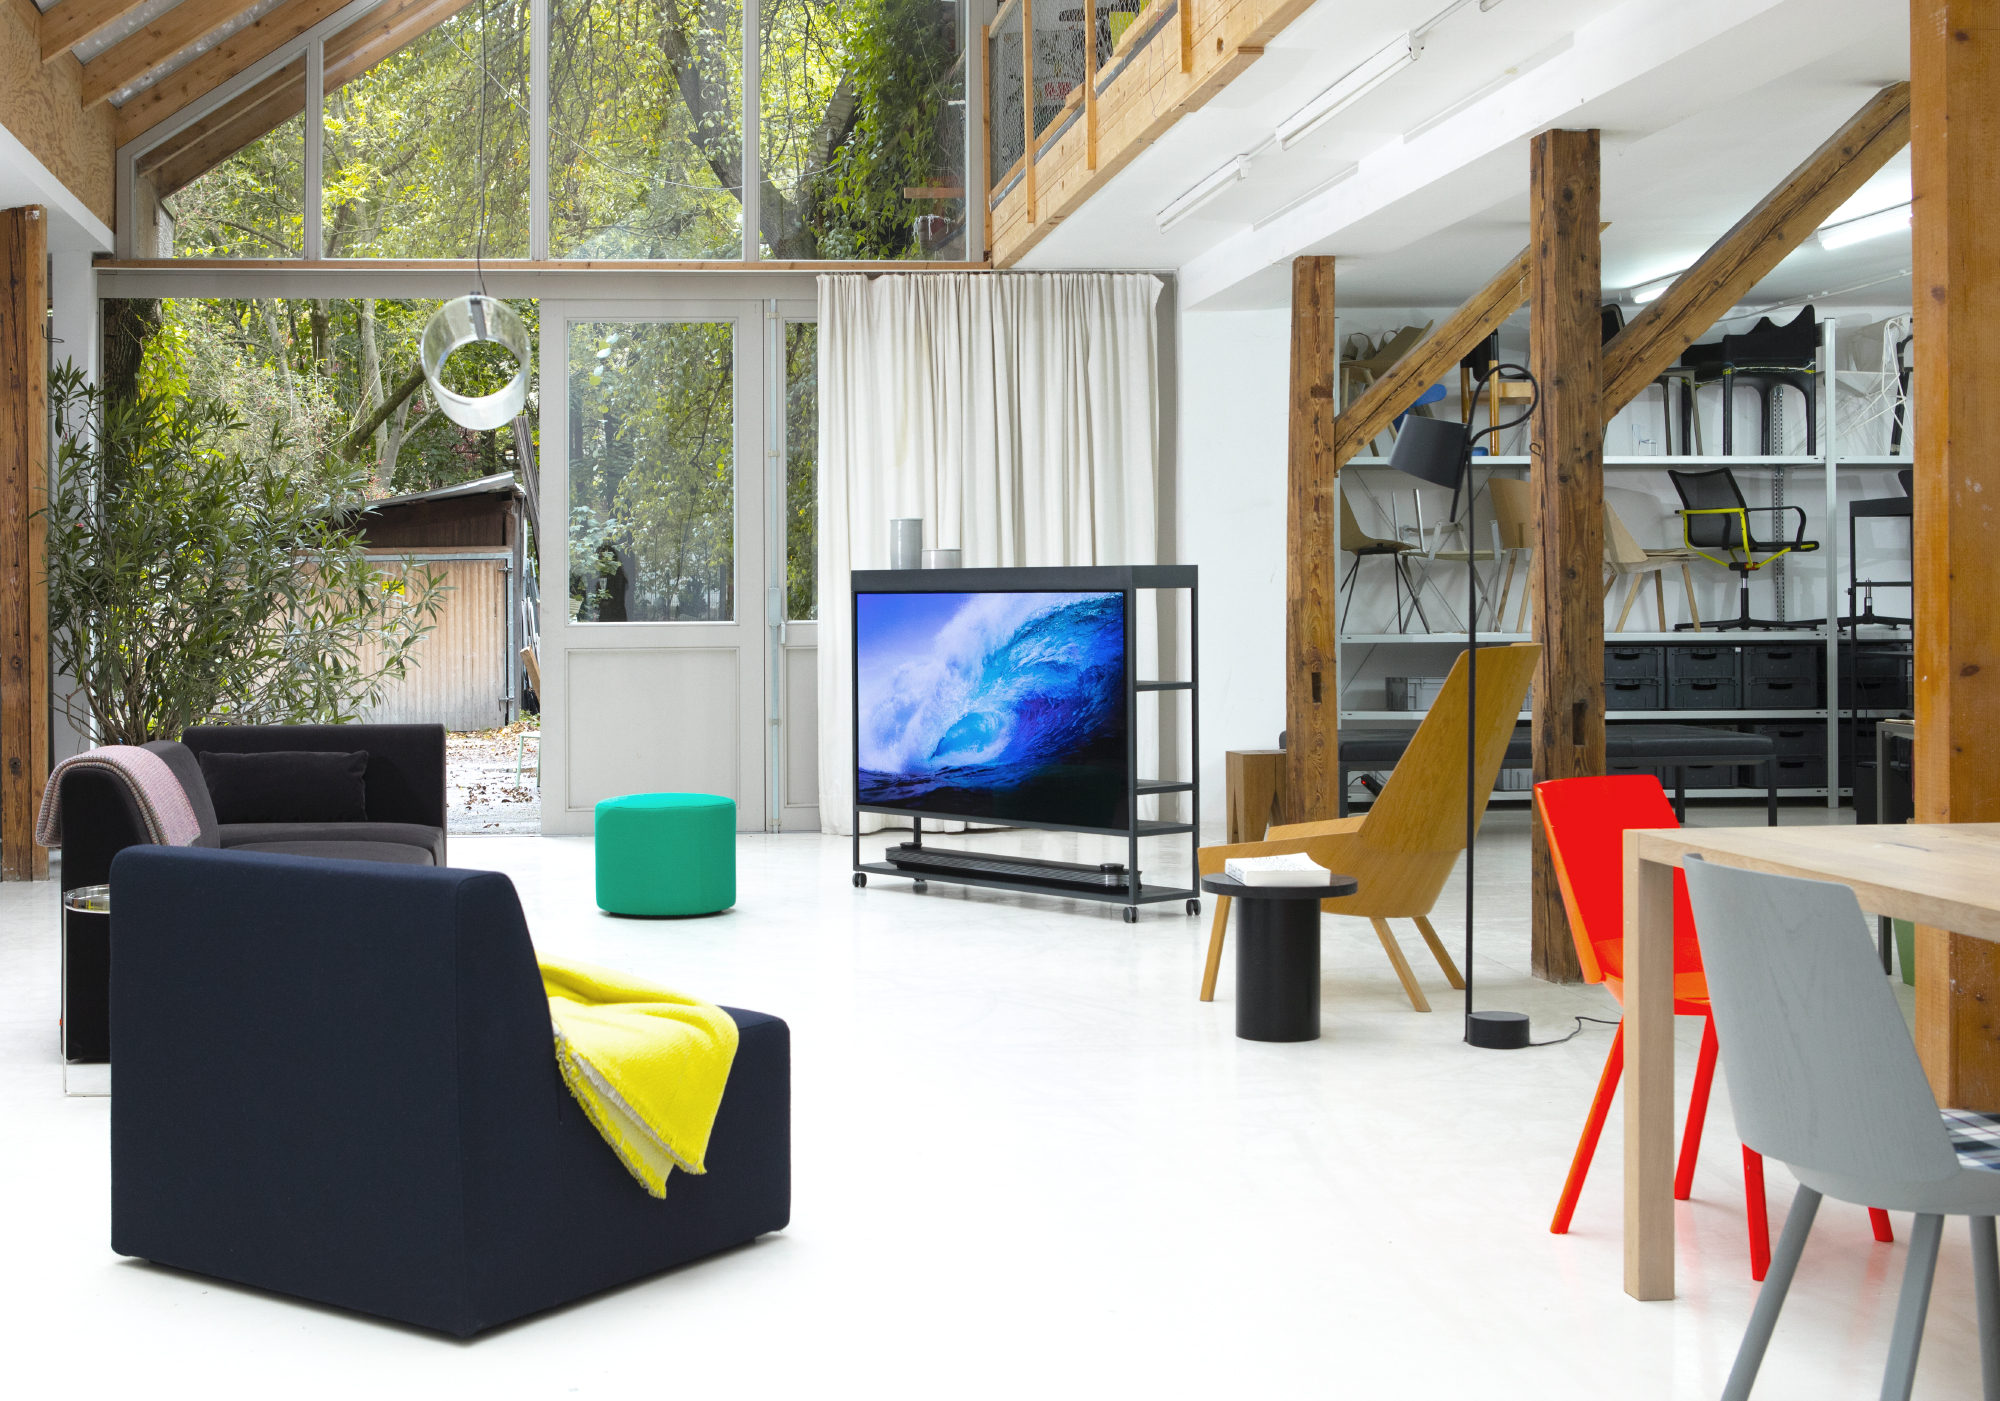 Lg signature universal appeal to interior designers and architects in the studio of designer stefan diez stands the lg signature oled tv w which biocorpaavc